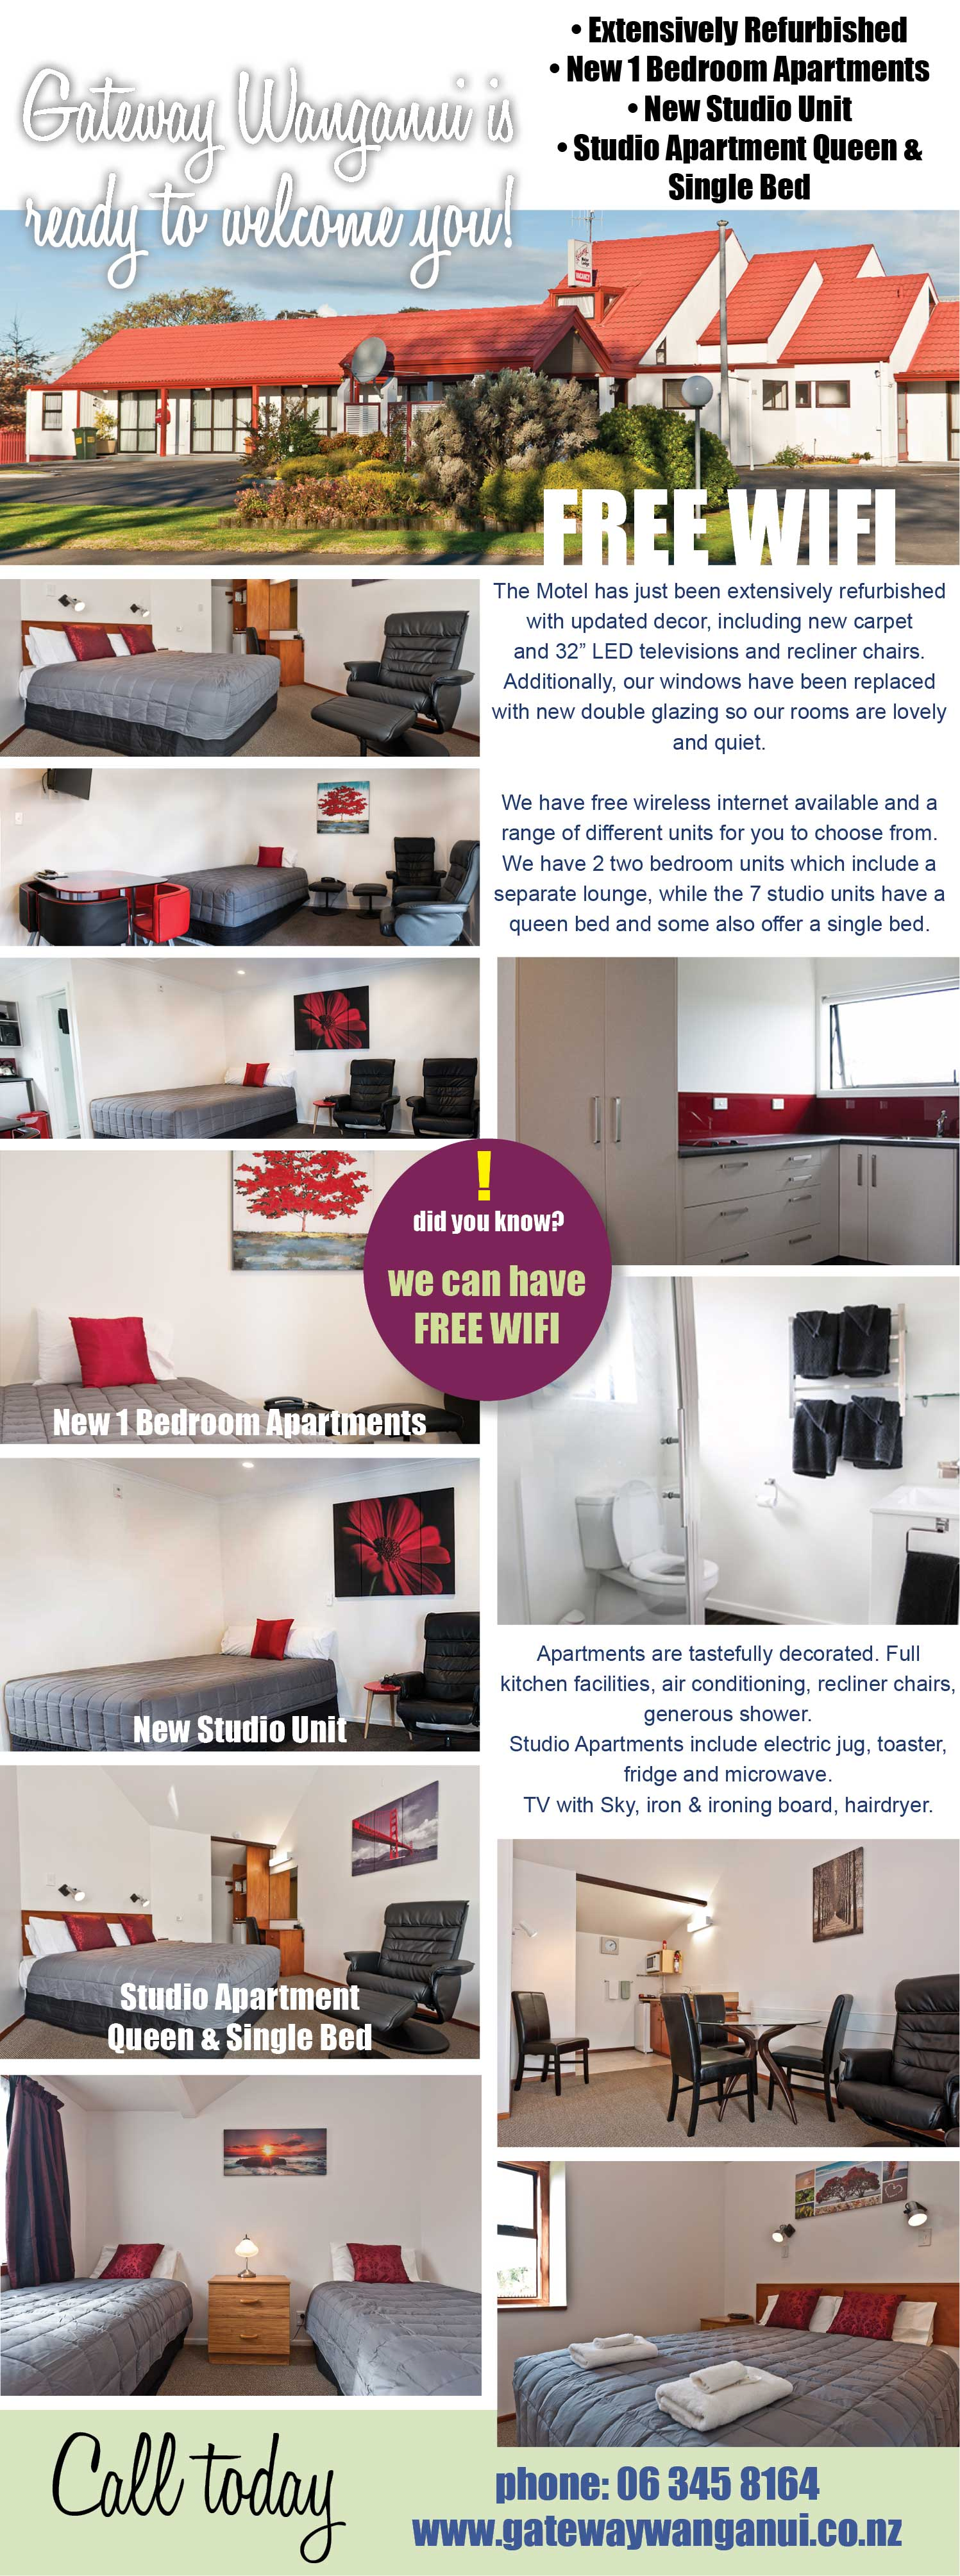 Gateway Motorlodge Wanganui, Extensively refurbished, Apartments, Studio Units, Free Wifi, Queen and Single beds, Sky TV